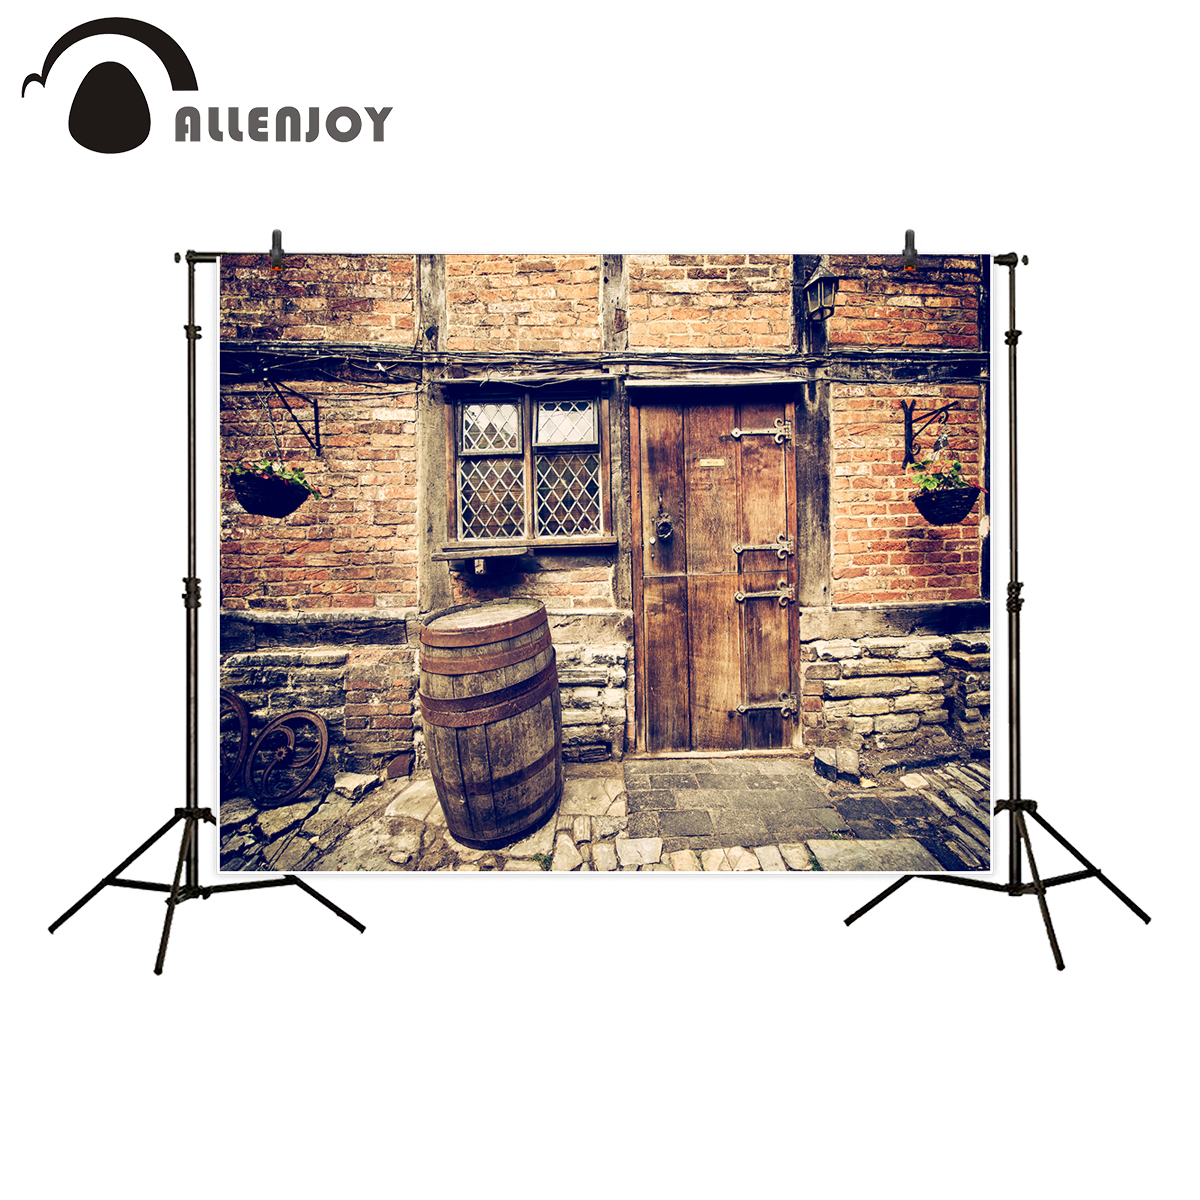 Background Consumer Electronics Bright Alenjoy Photography Backdrop Halloween Pumpkin Table Brick Wall Background Photocall Photo Prop Shoot Printed Customize Printed